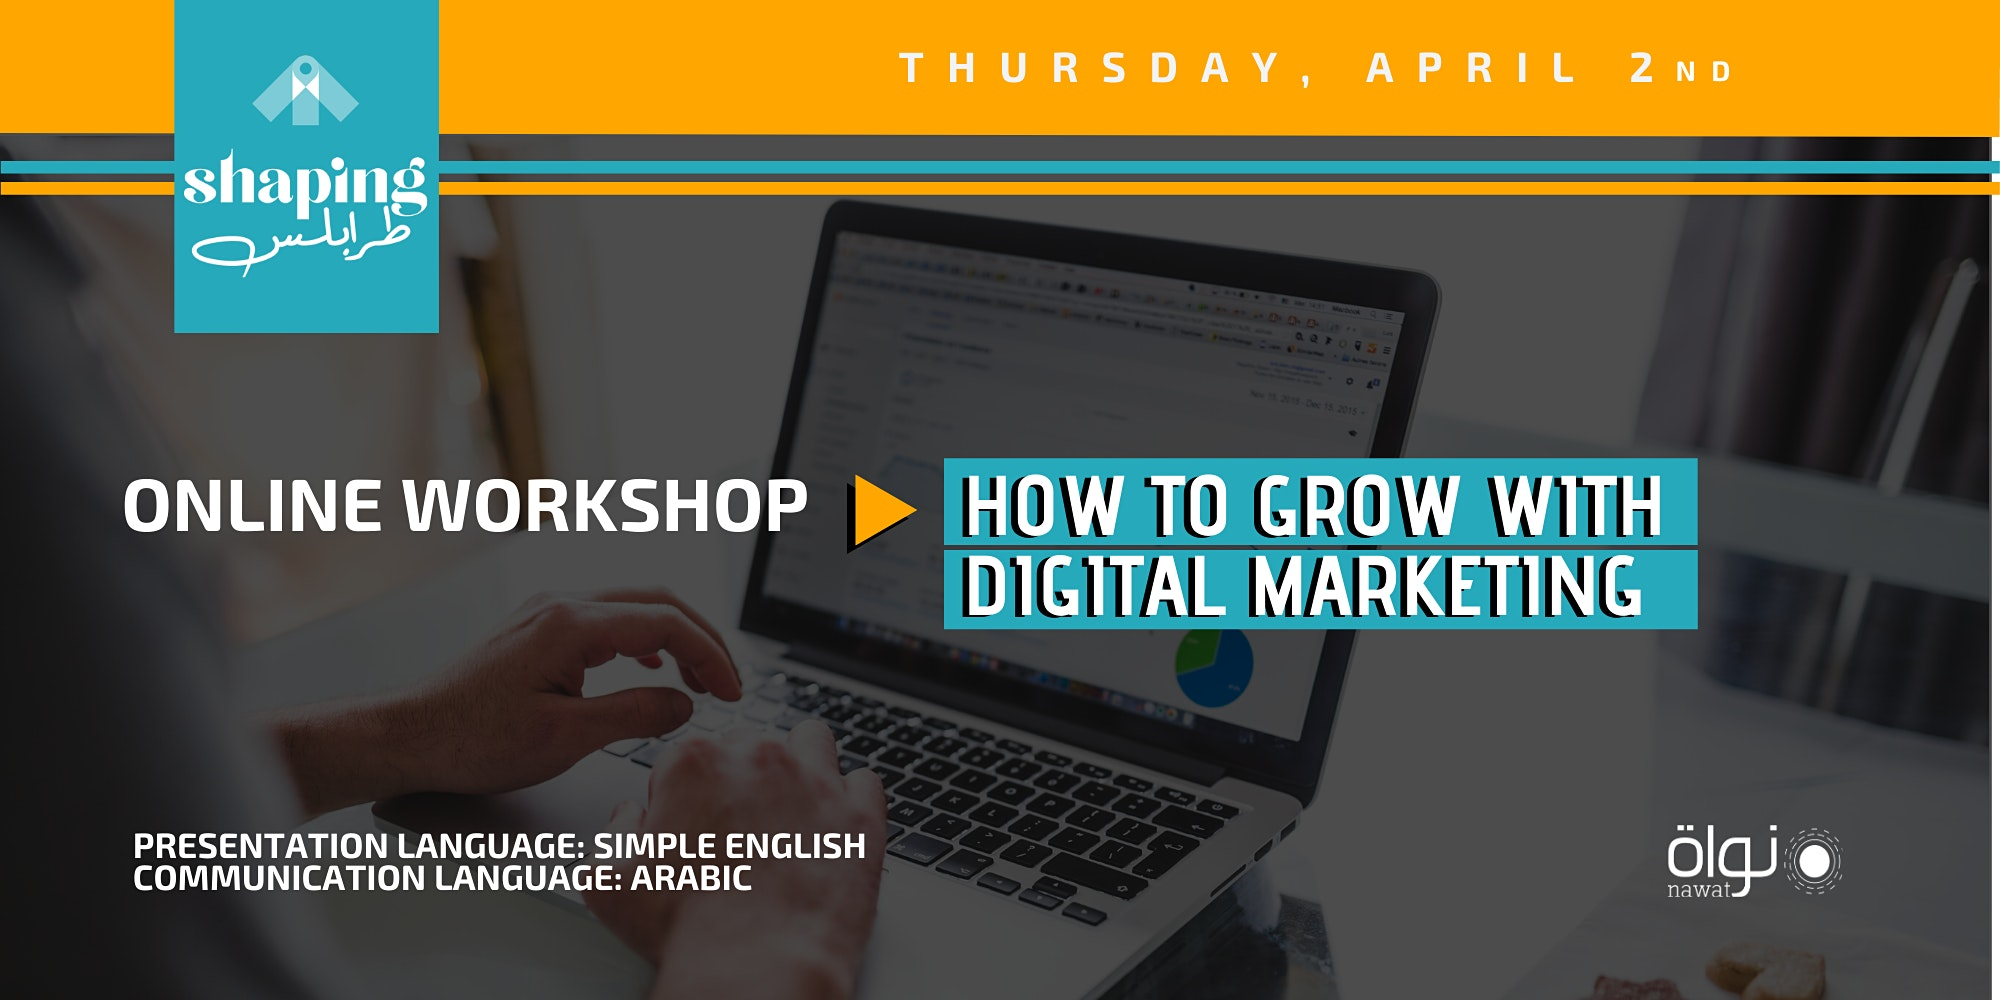 How to Grow With Digital Marketing